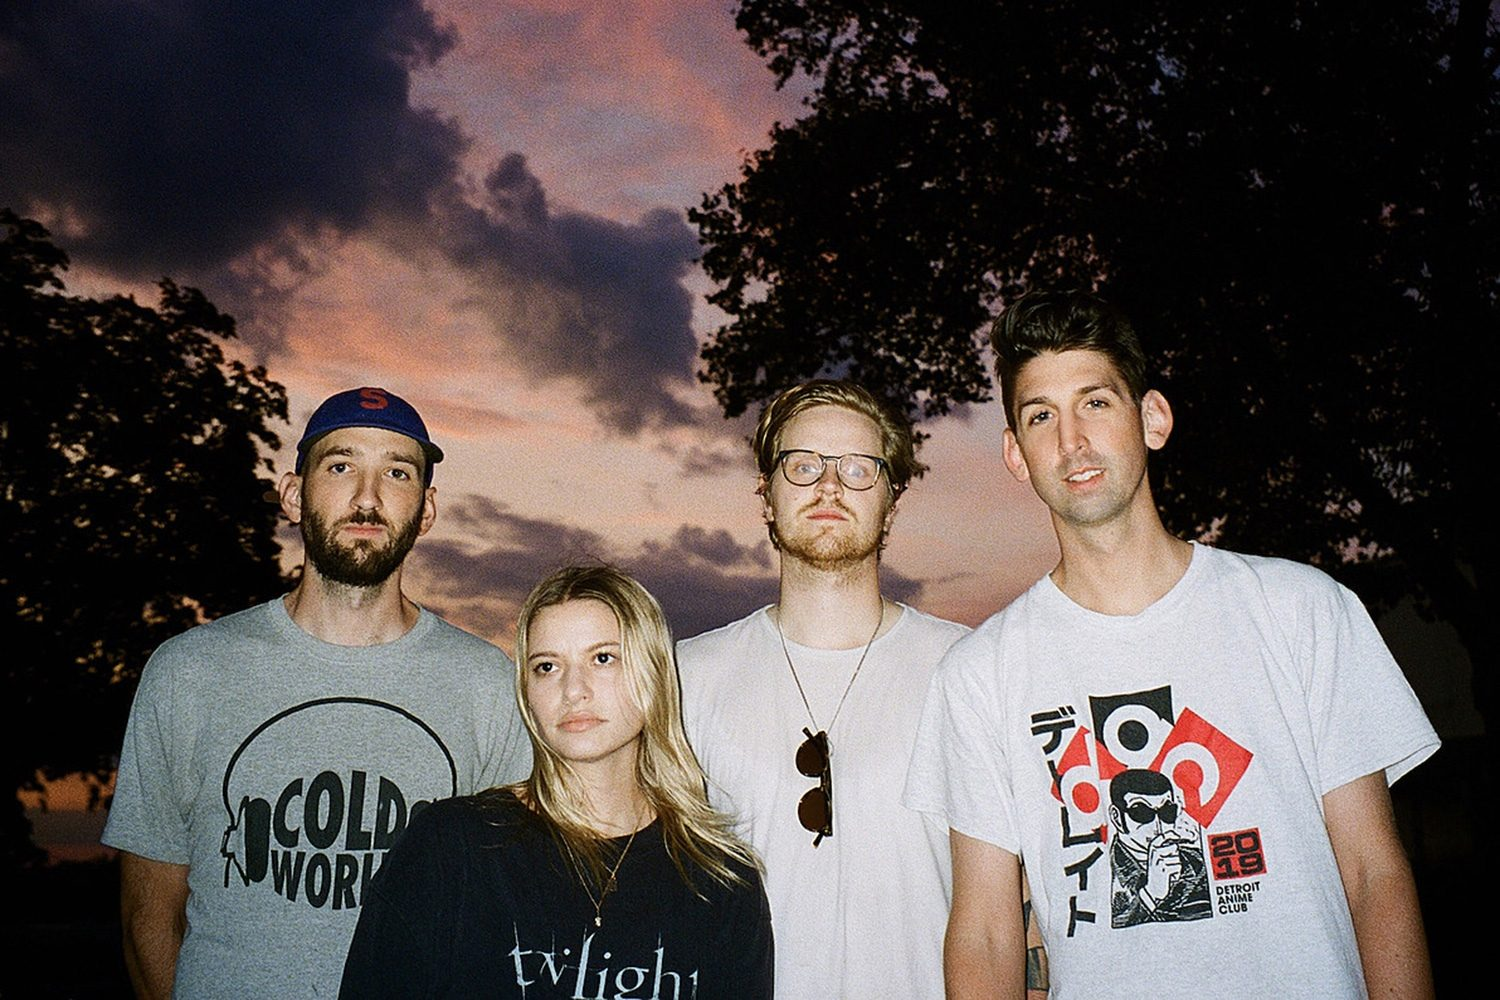 Tigers Jaw have signed to Hopeless Records, and dropped their new track 'Warn Me'